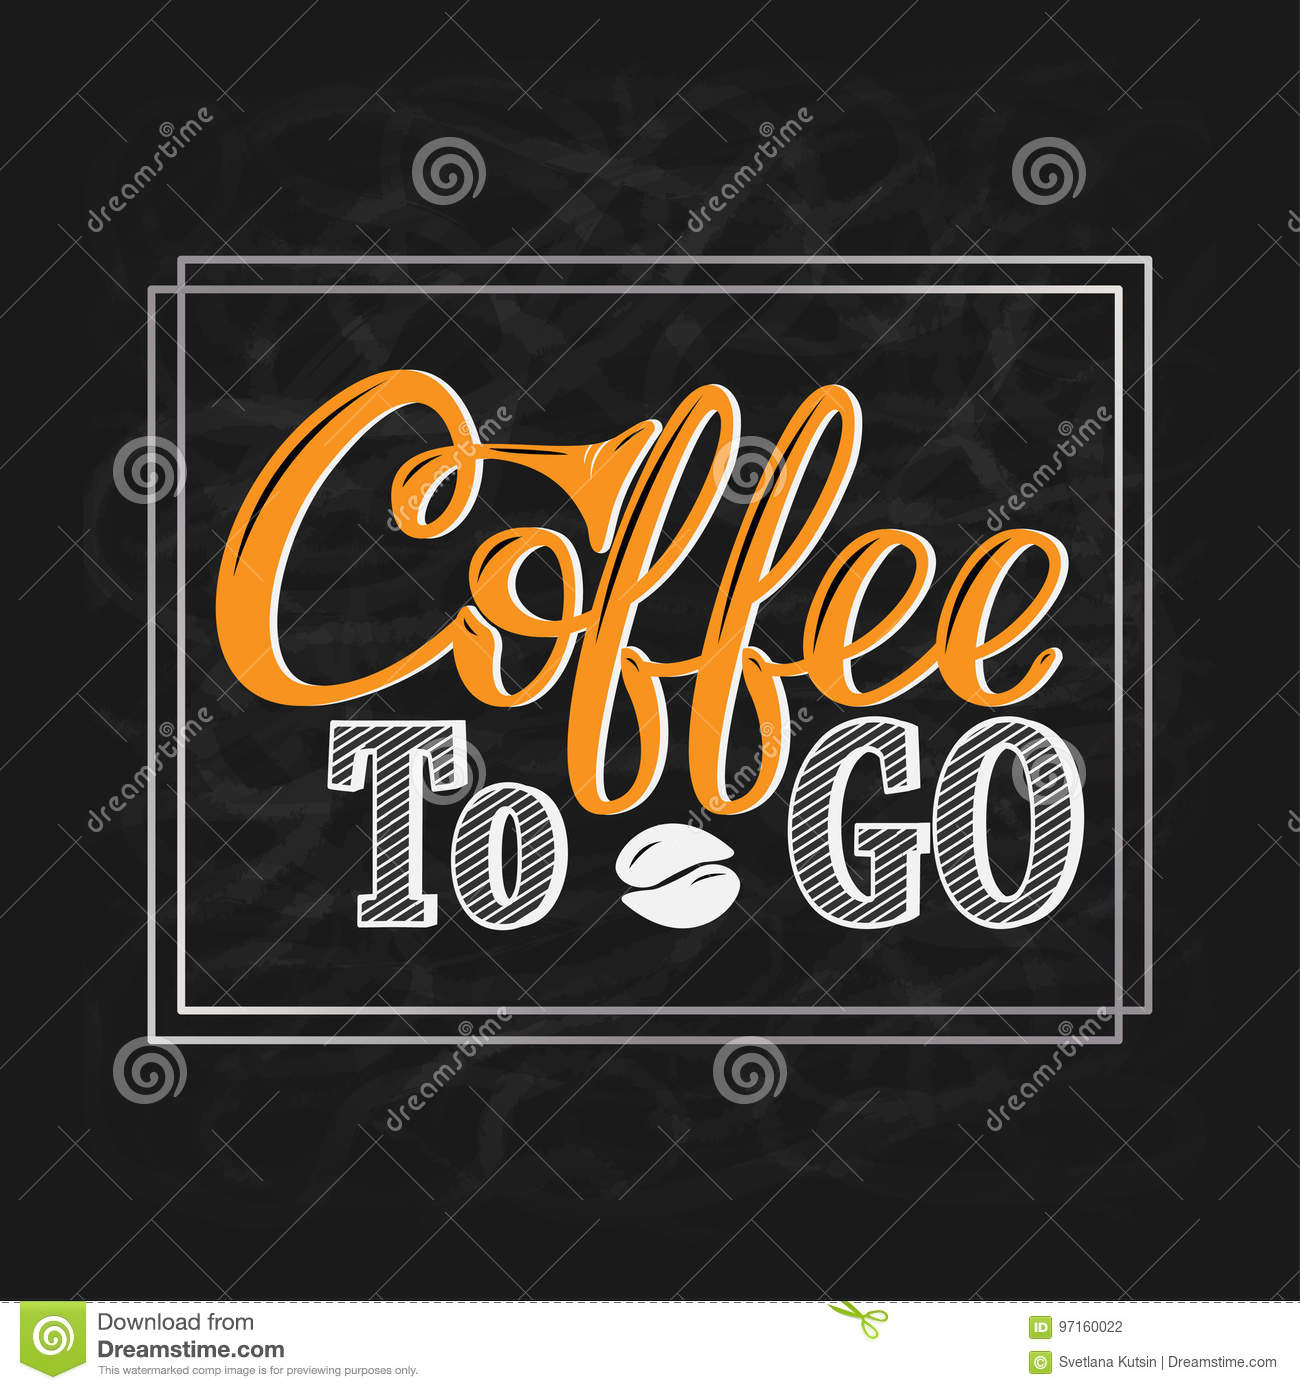 coffee to go hand drawn lettering for prints posters menu design